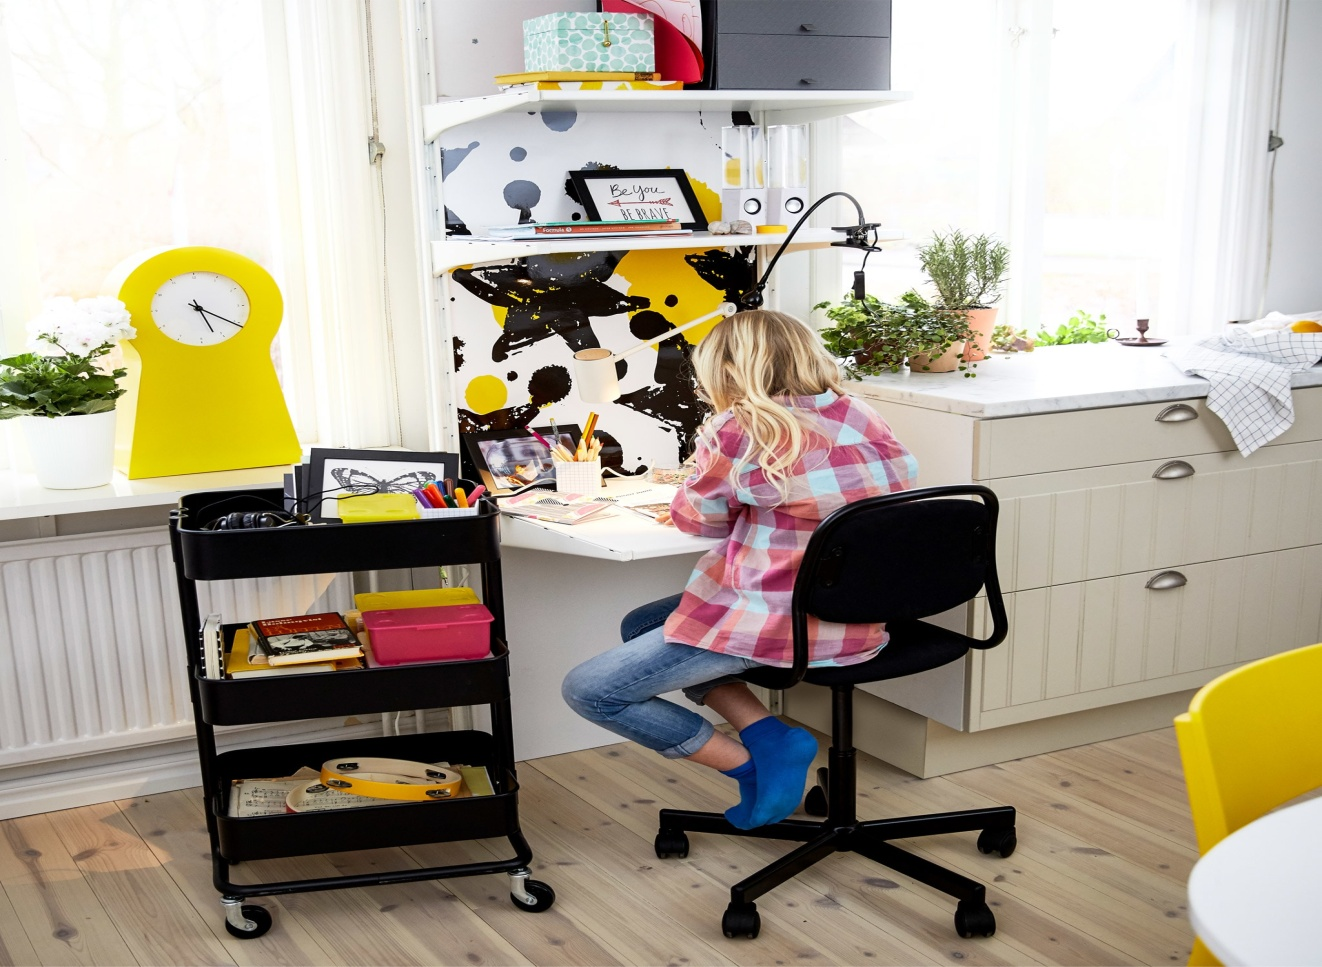 Study space in kids' room - Taskmasters Dubai